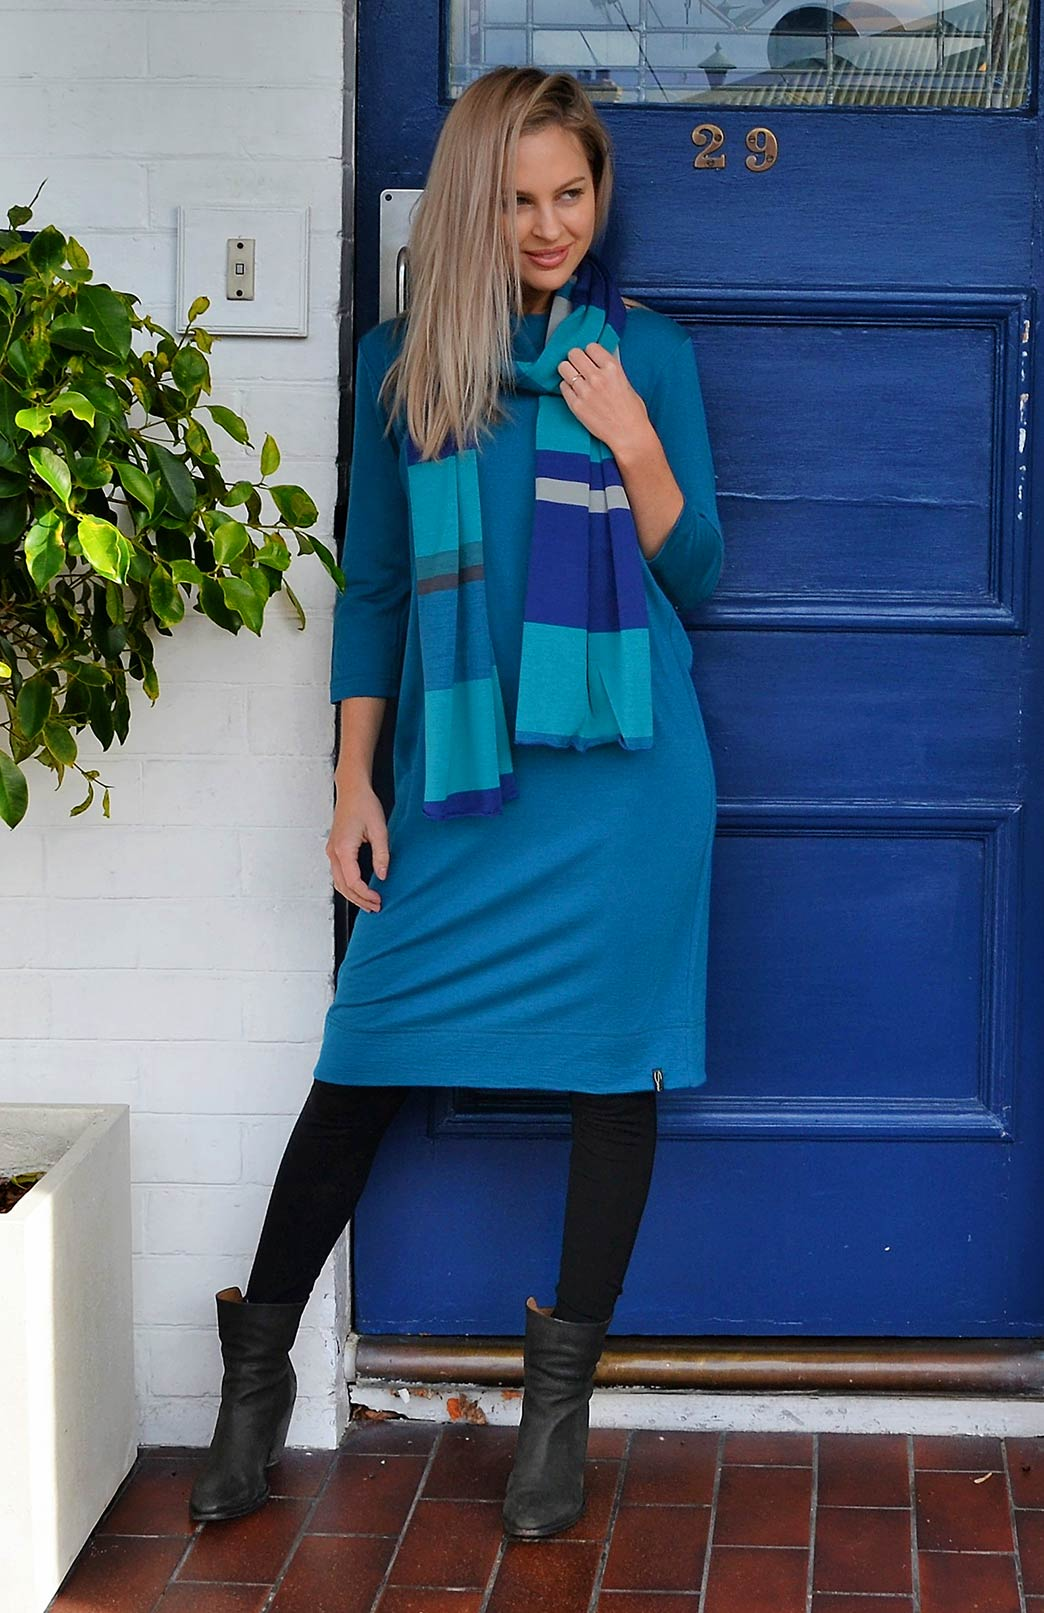 Audrey Dress - Women's Teal Merino Wool Classic Knee Length Dress - Smitten Merino Tasmania Australia